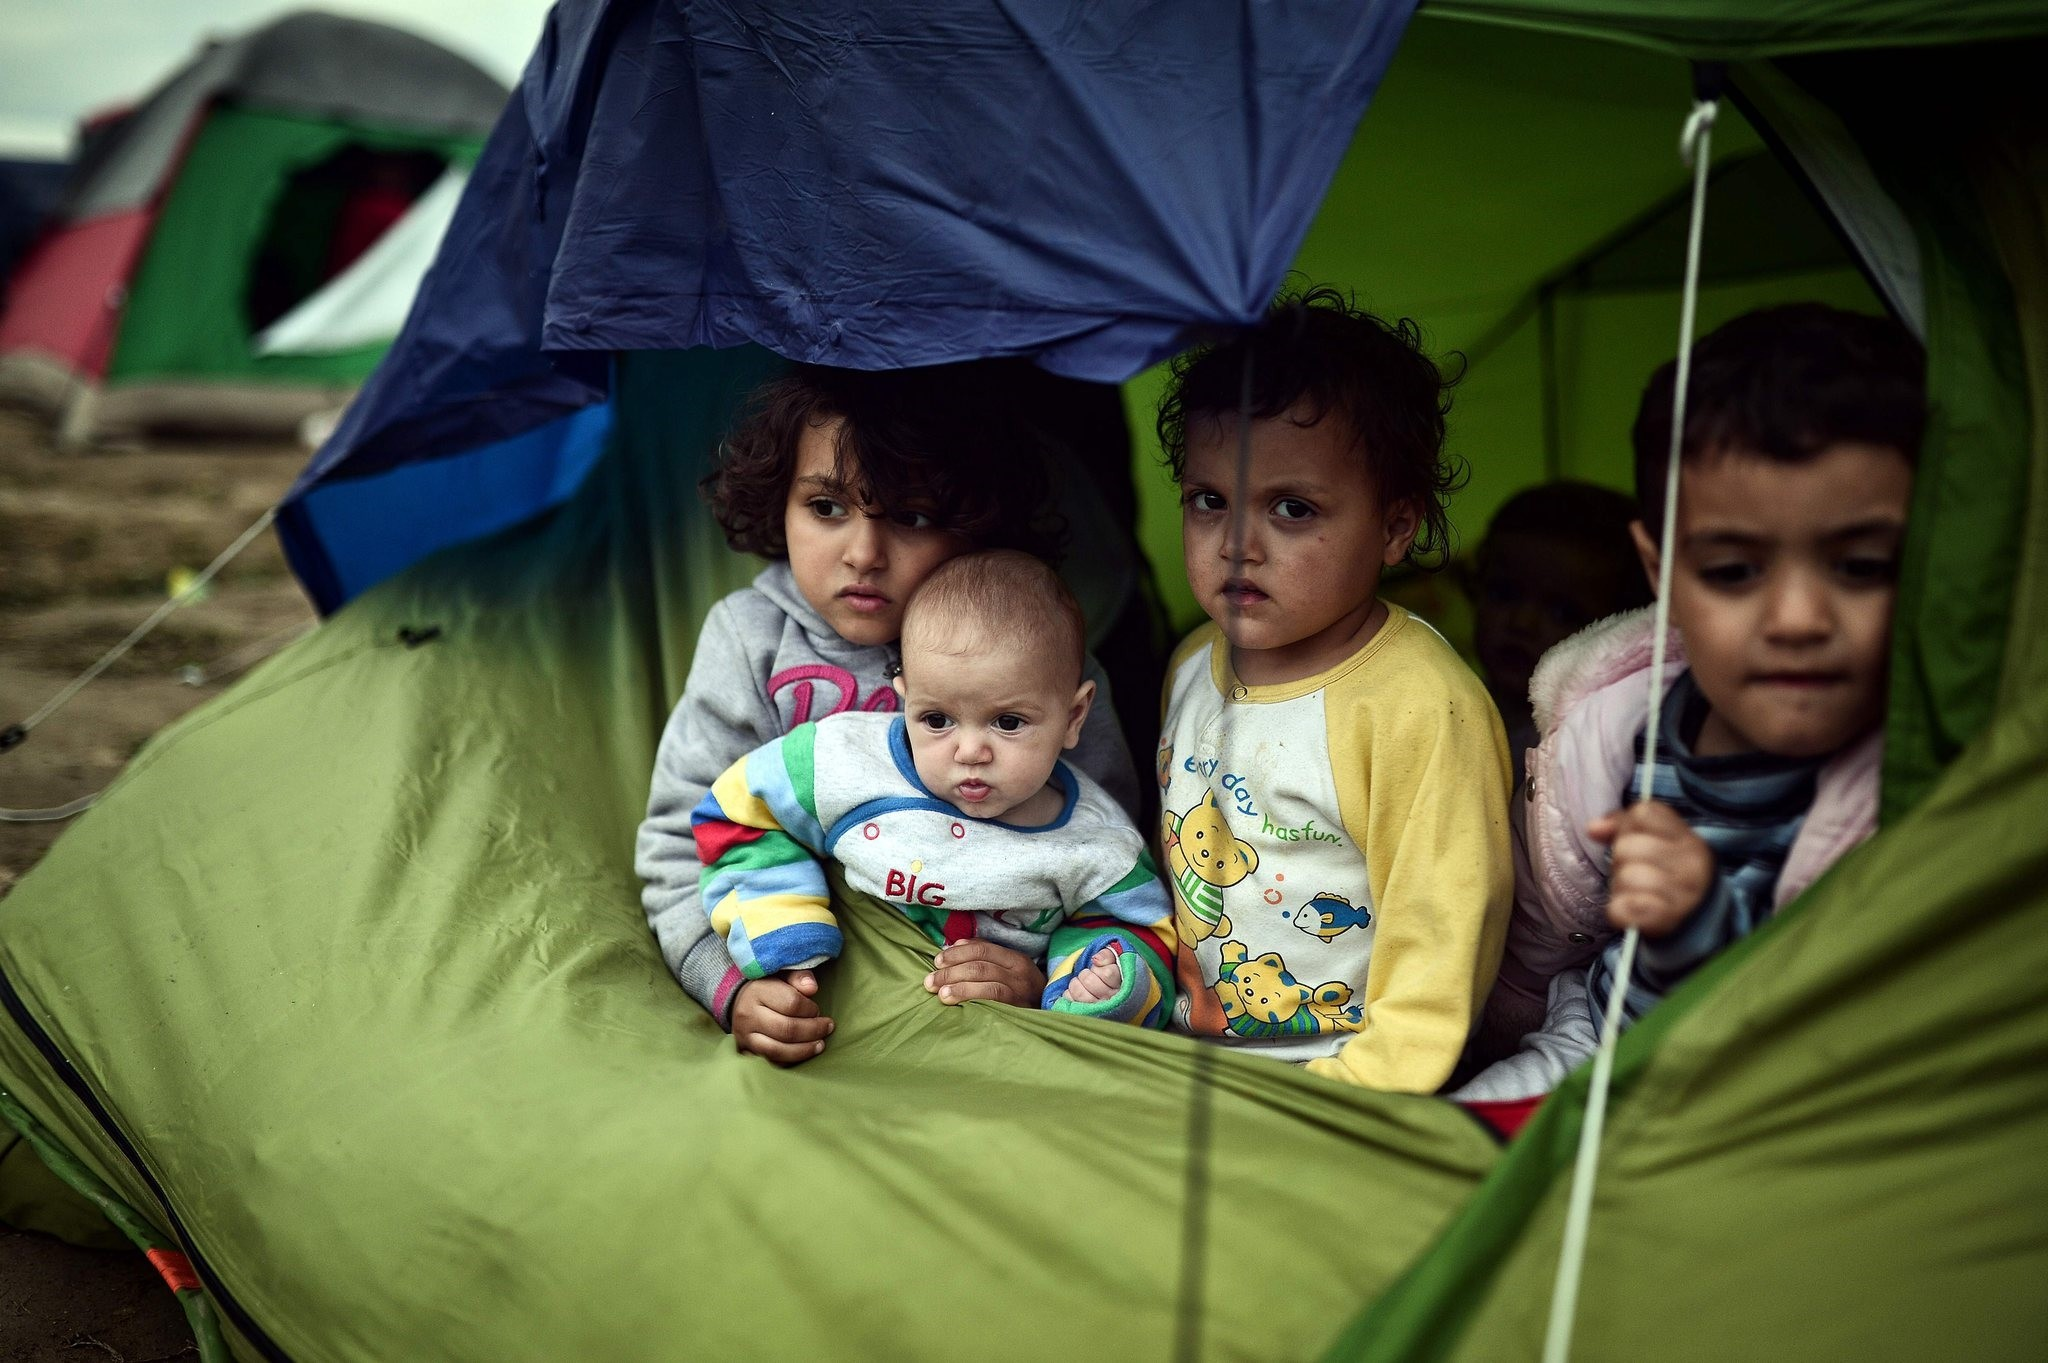 Migrant children stranded in Greece struggle to survive with other a tent for shelter. (AFP Photo)